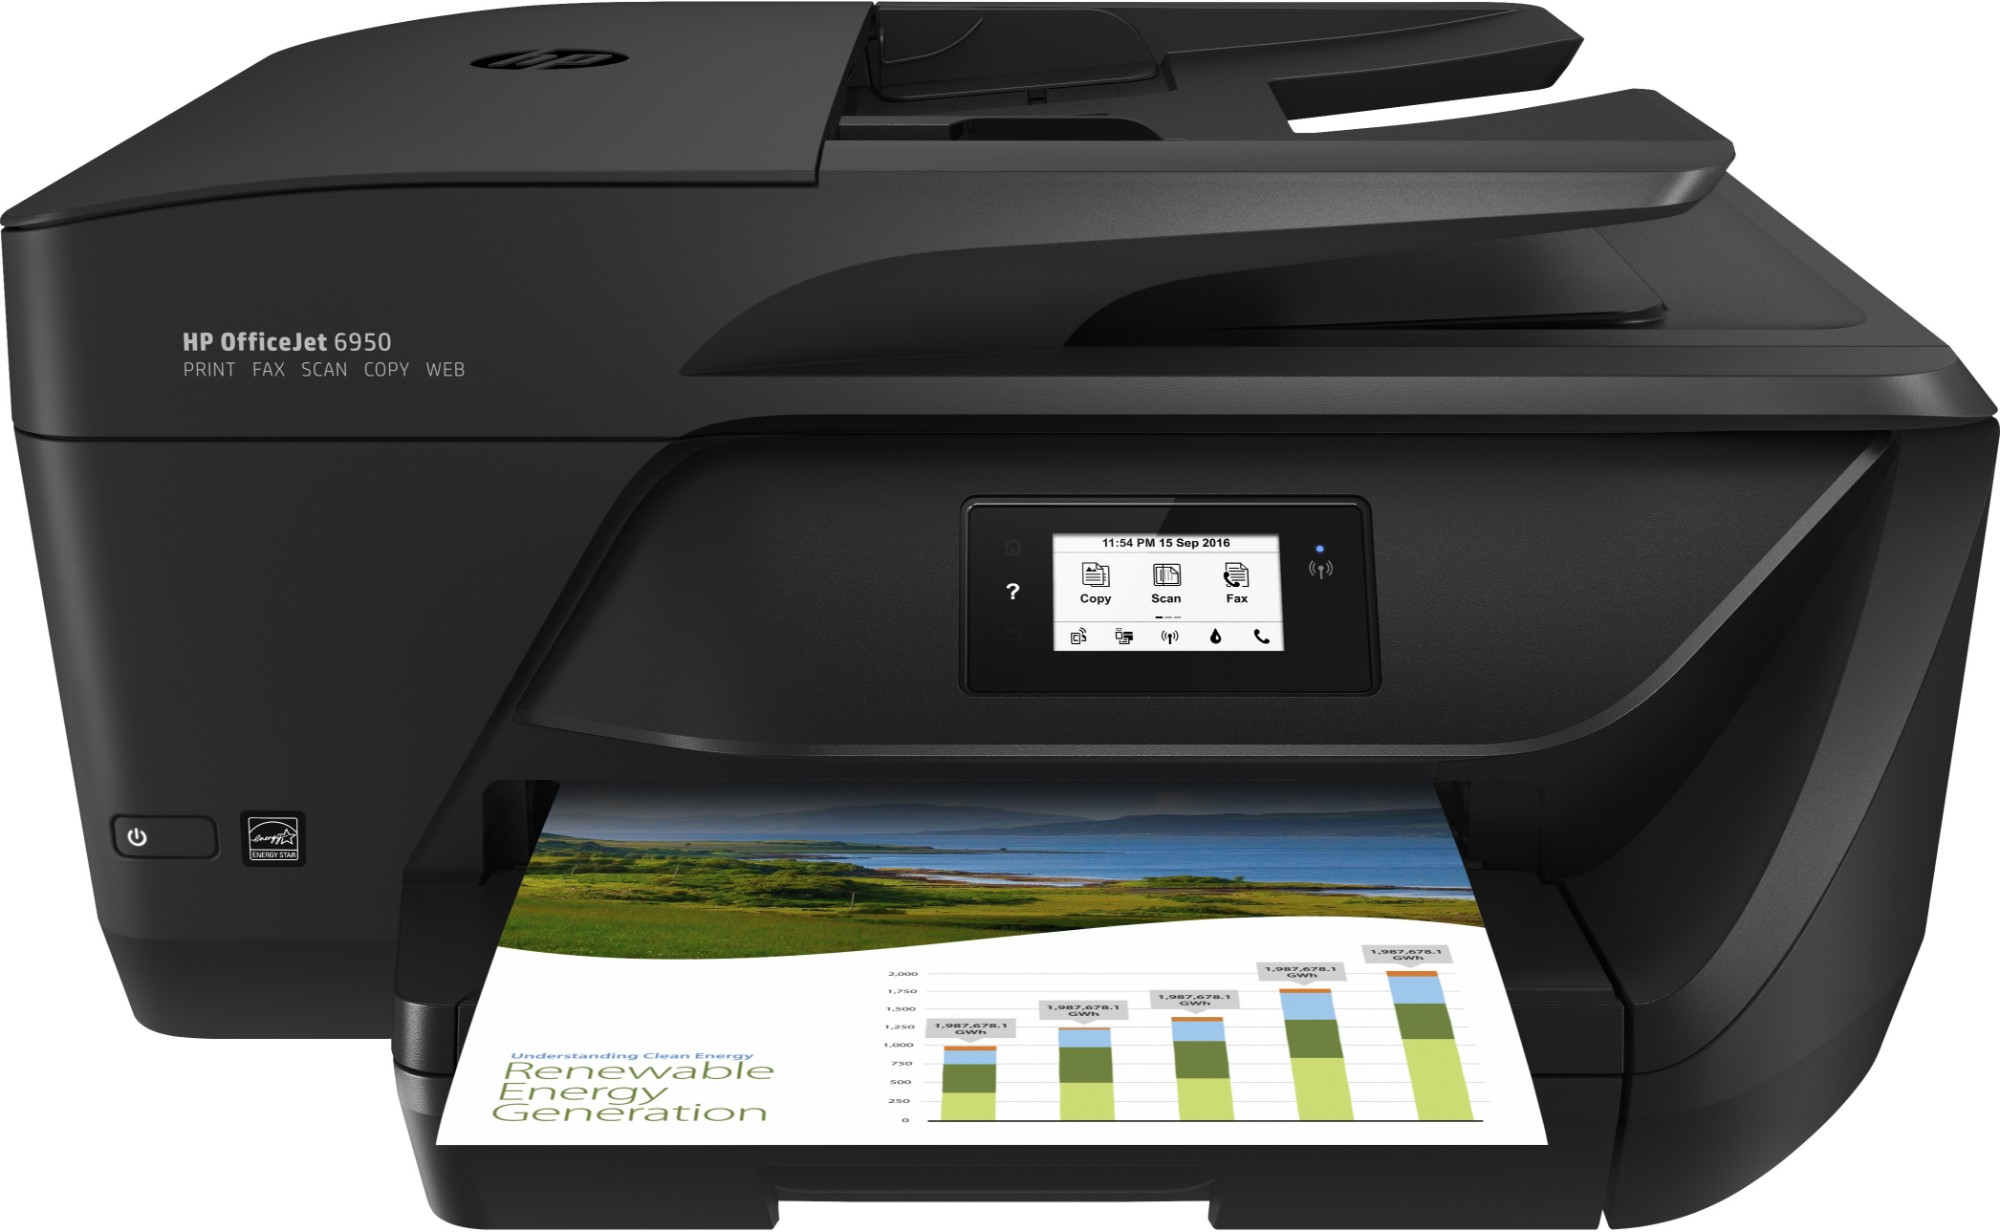 HP OfficeJet 6950 All-in-One Printer